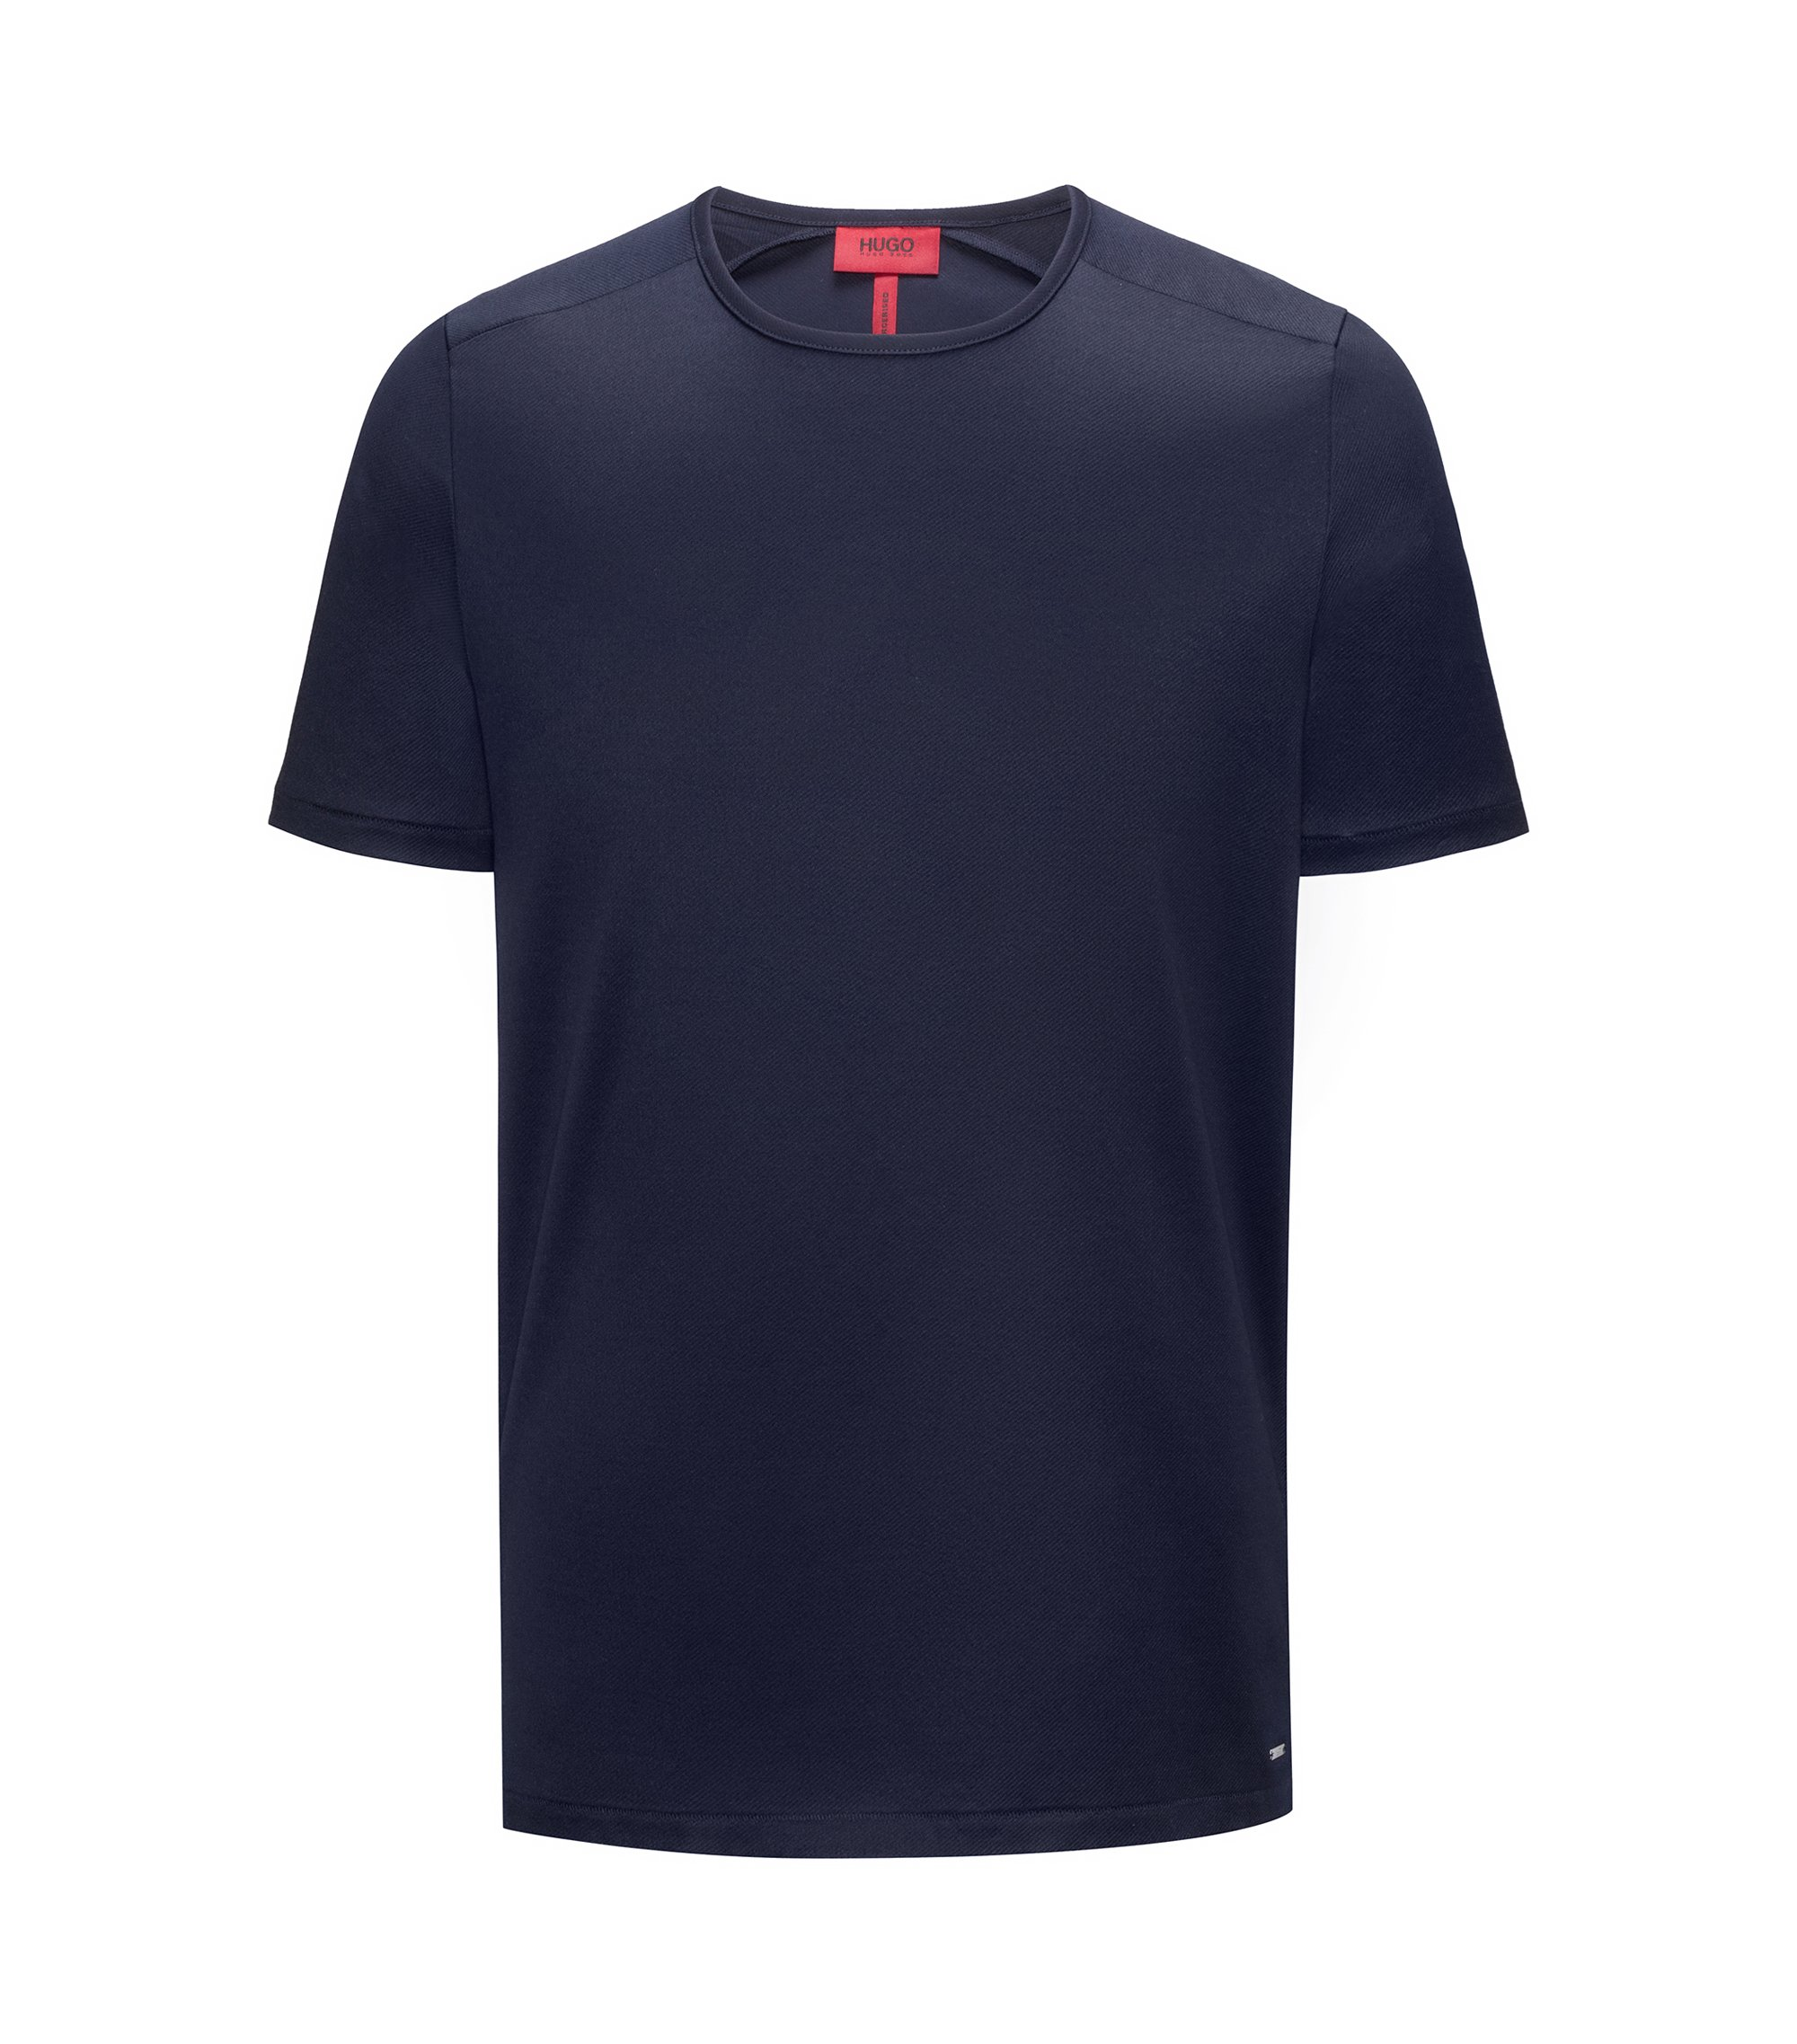 Mercerized Cotton T-Shirt | Dajor, Dark Blue